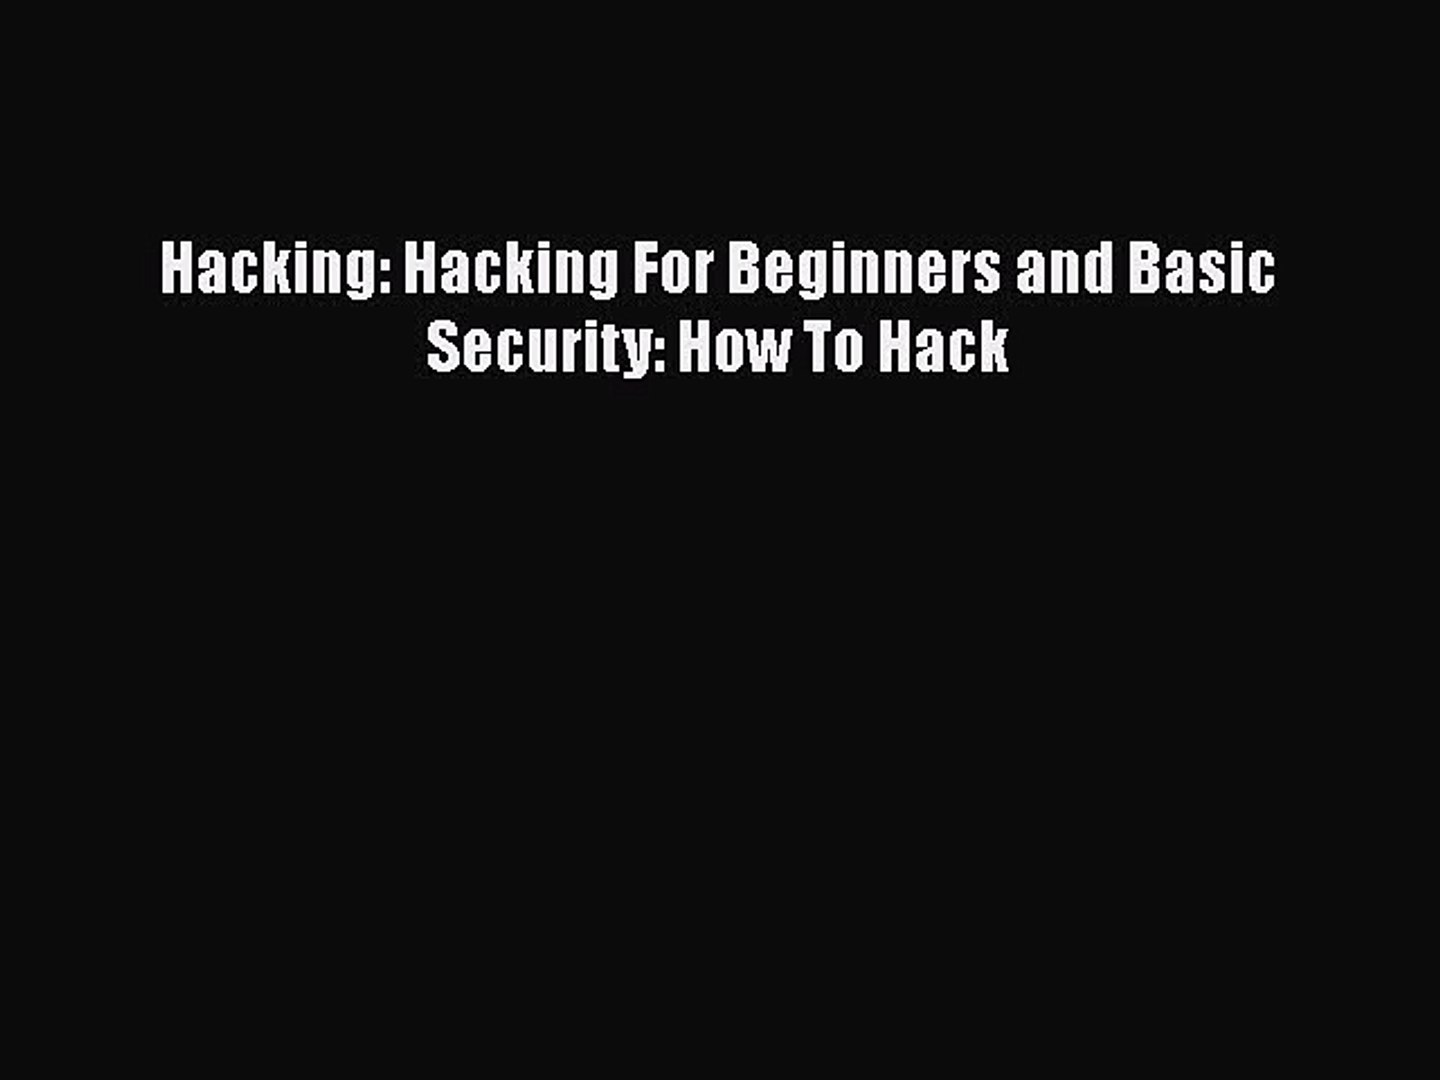 Download Hacking: Hacking For Beginners and Basic Security: How To Hack Free Books